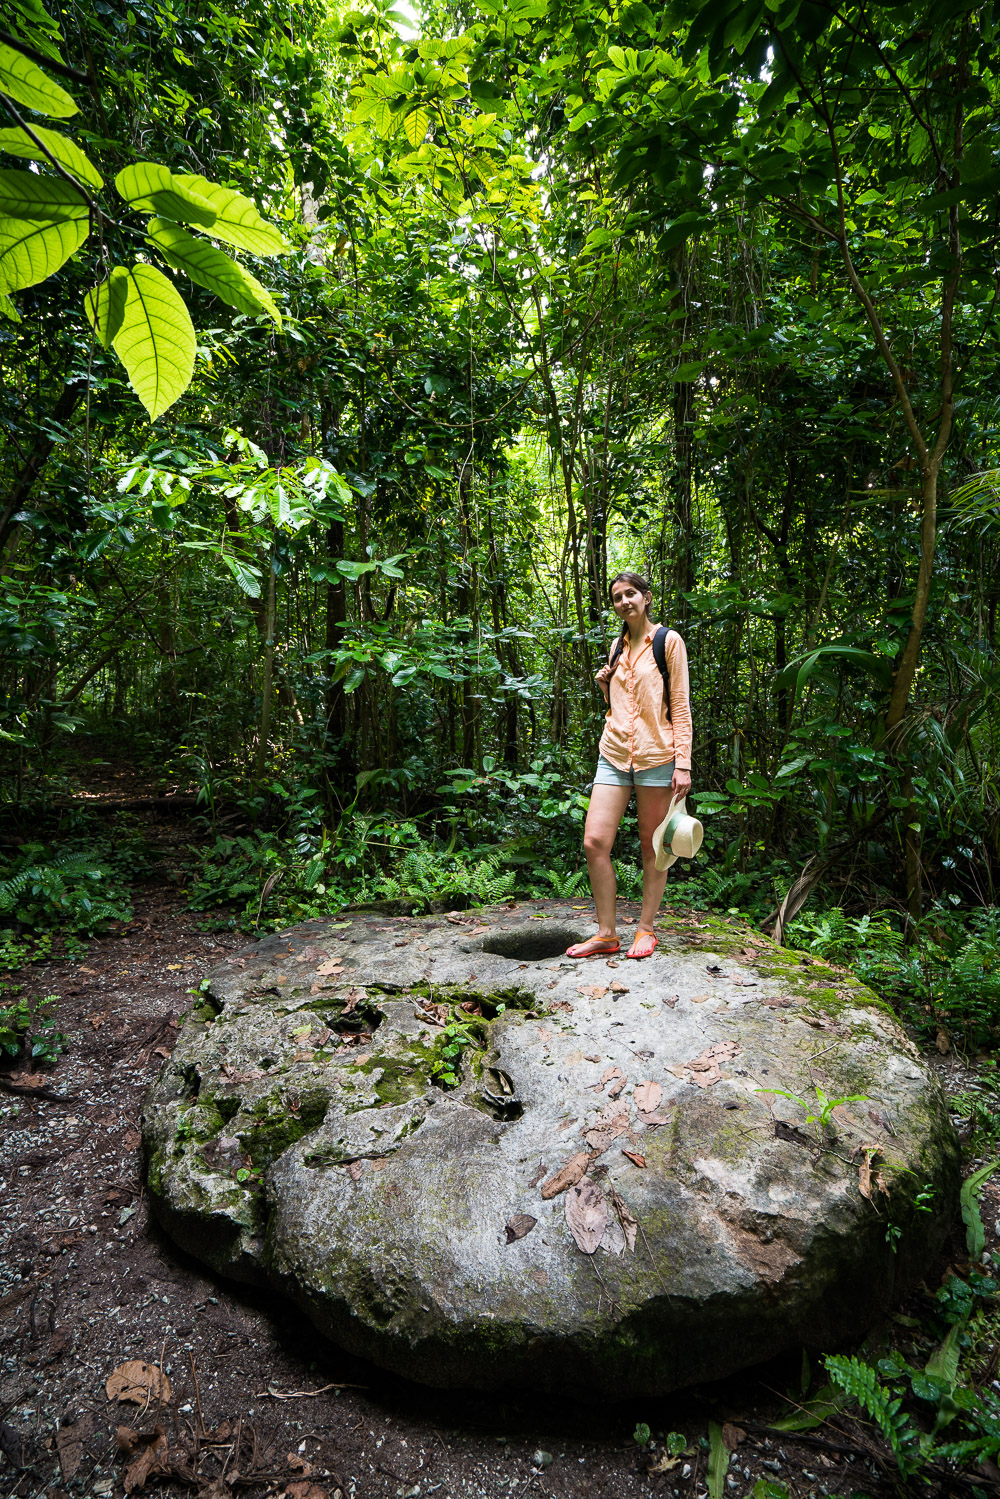 Finding stone money - Things to Do in Palau